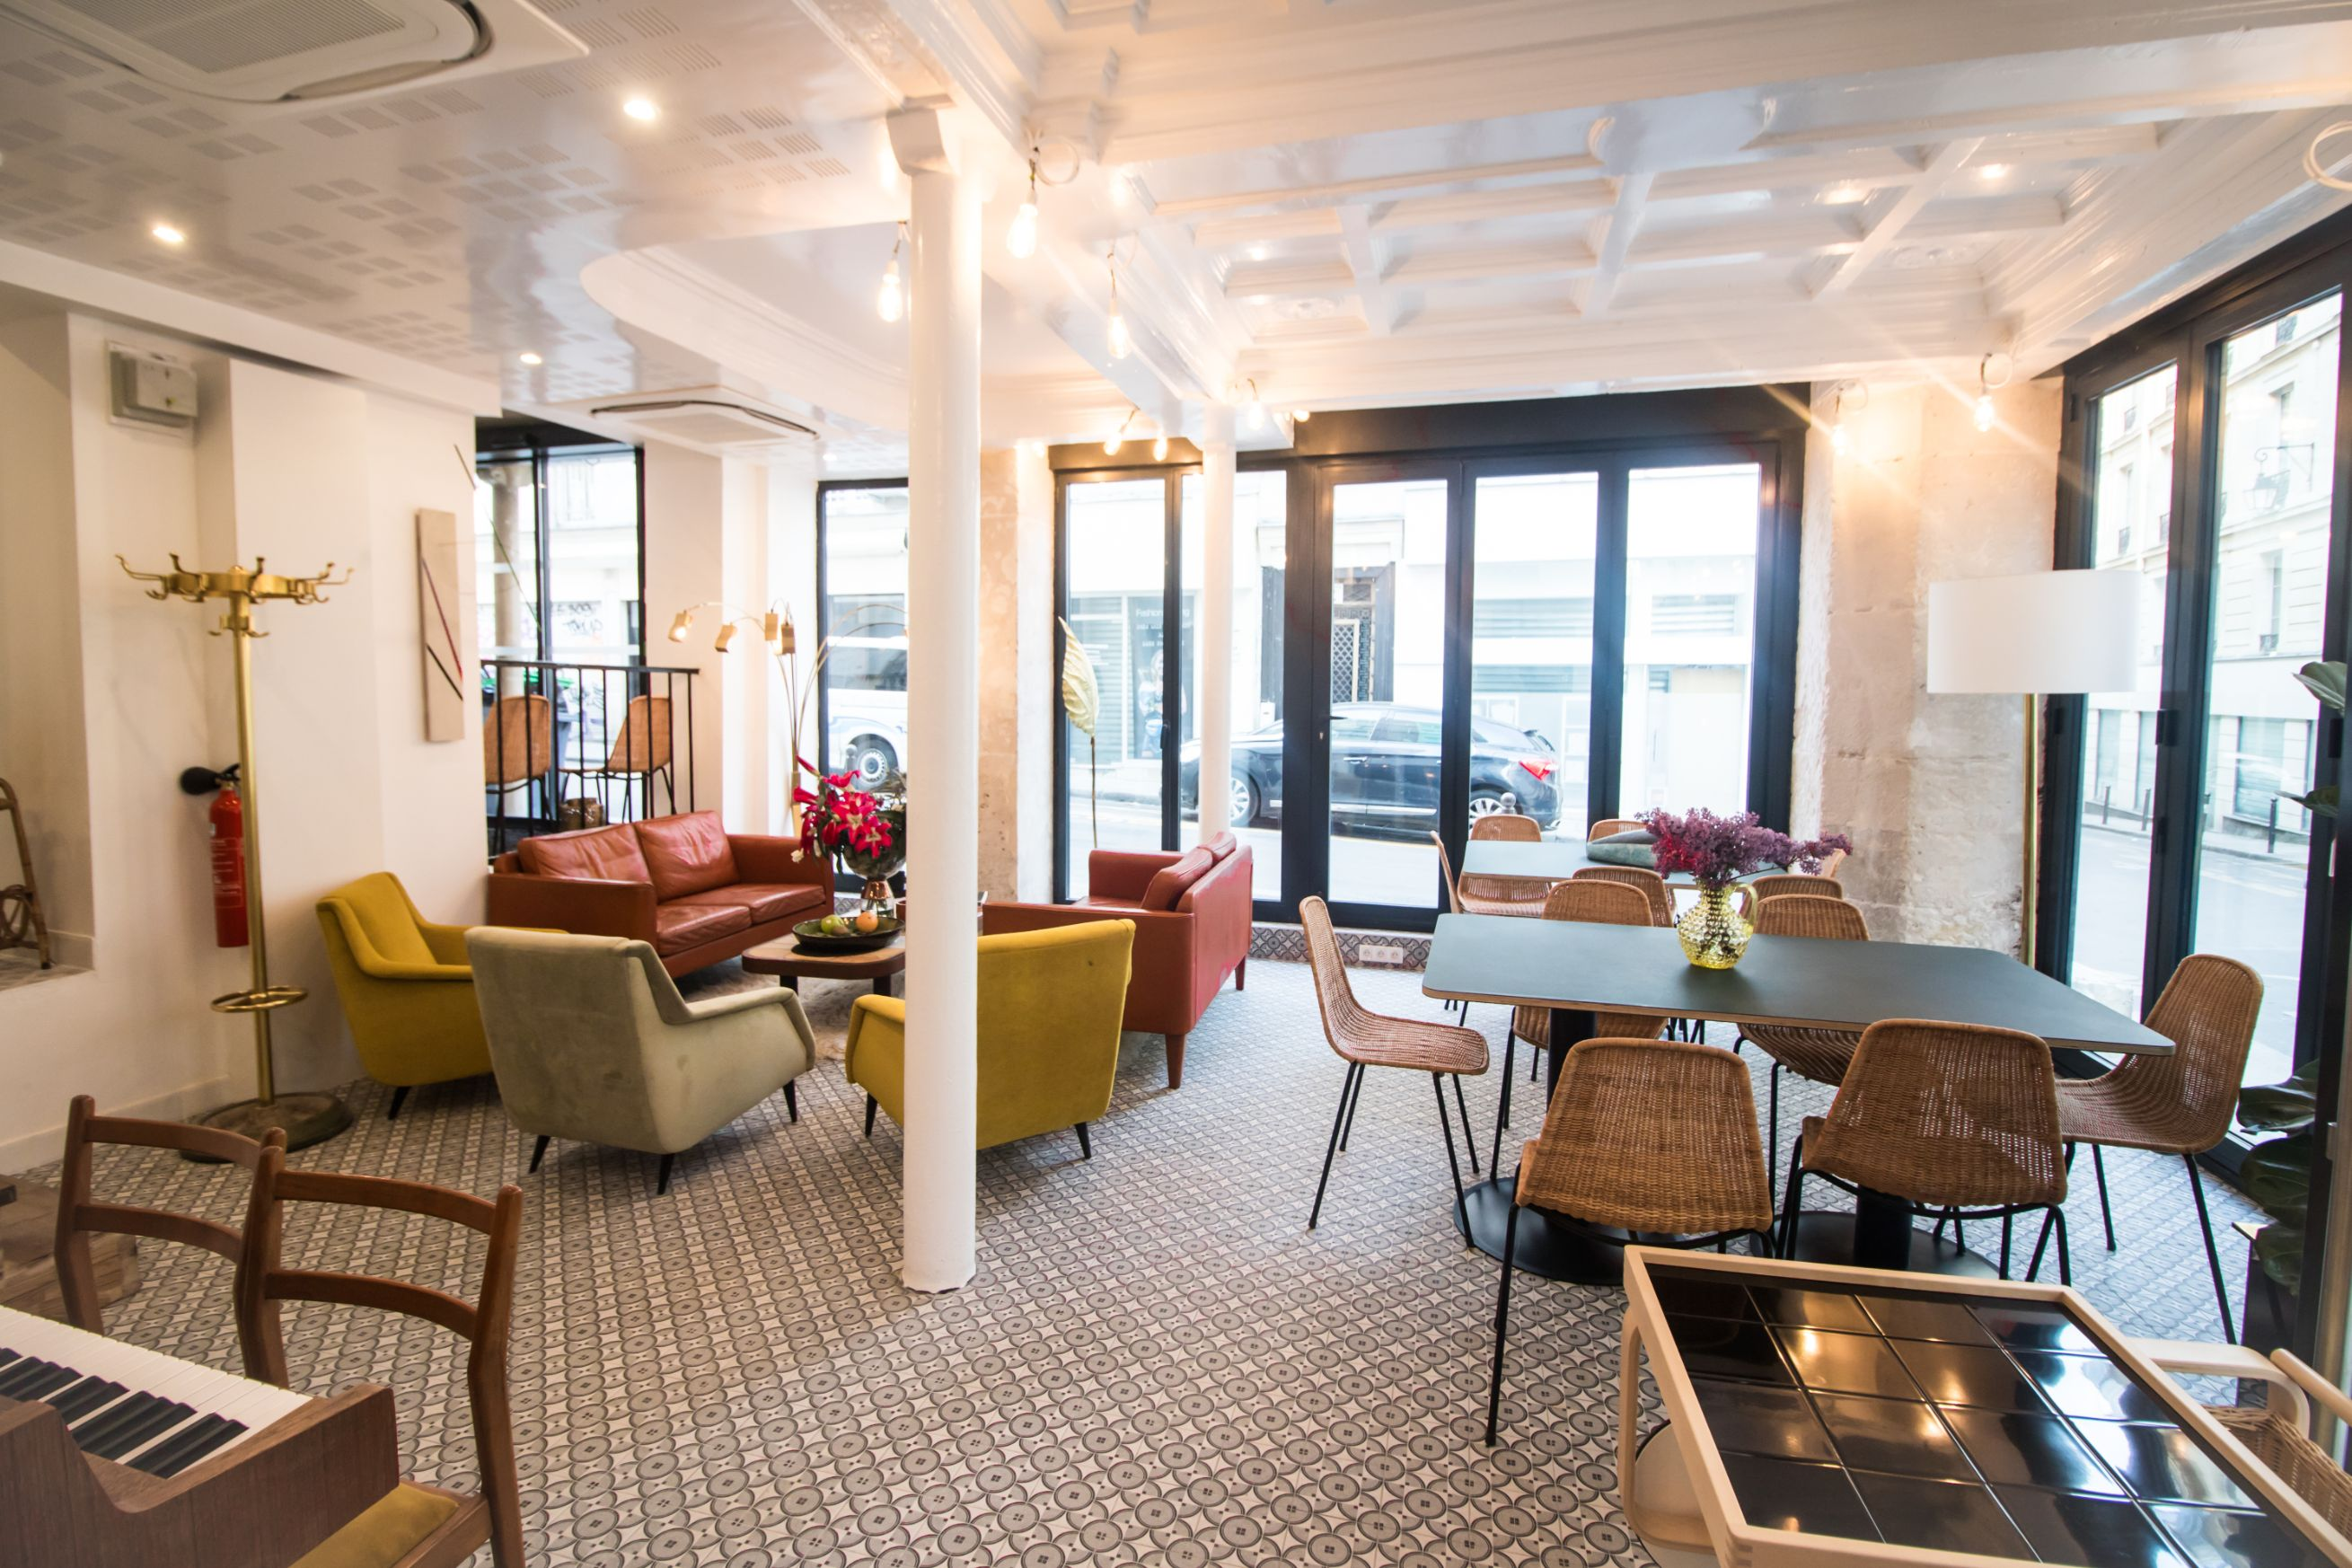 Bright hotel lobby with a quirky, unique interior and Scandinavian style. Tables and chairs. Mustard seats. Piano. Hotel Baby Paris Review: The Best Budget Hotel in Paris. Paris hotel. Paris hotels. Paris France. Paris budget hotels. Best hotels in Paris. Paris accommodation. Cheap hotels in Paris. Paris hotel deals. Places to stay in Paris. Top hotels in Paris. Paris hotel booking. Where to stay in Paris. Cheap accommodation in Paris. Hotels in central Paris. Paris travel blog. Paris travel guide. Things to do in Paris. What to do in Paris. Places to See in Paris. Things to see in Paris. What to see in Paris. Click through to read more...